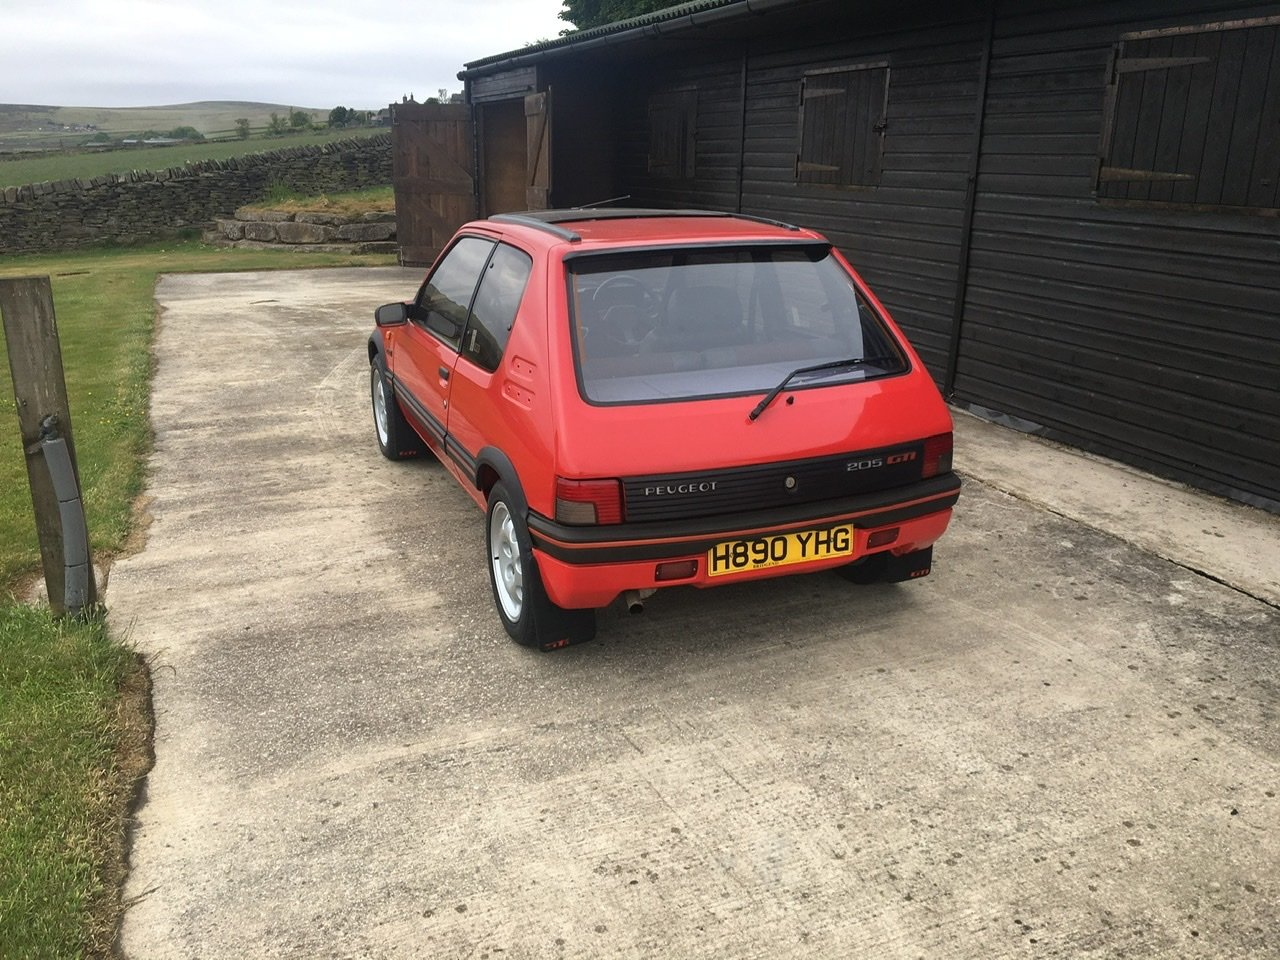 1991 Peugeot 205gti 1.9 SOLD (picture 2 of 6)